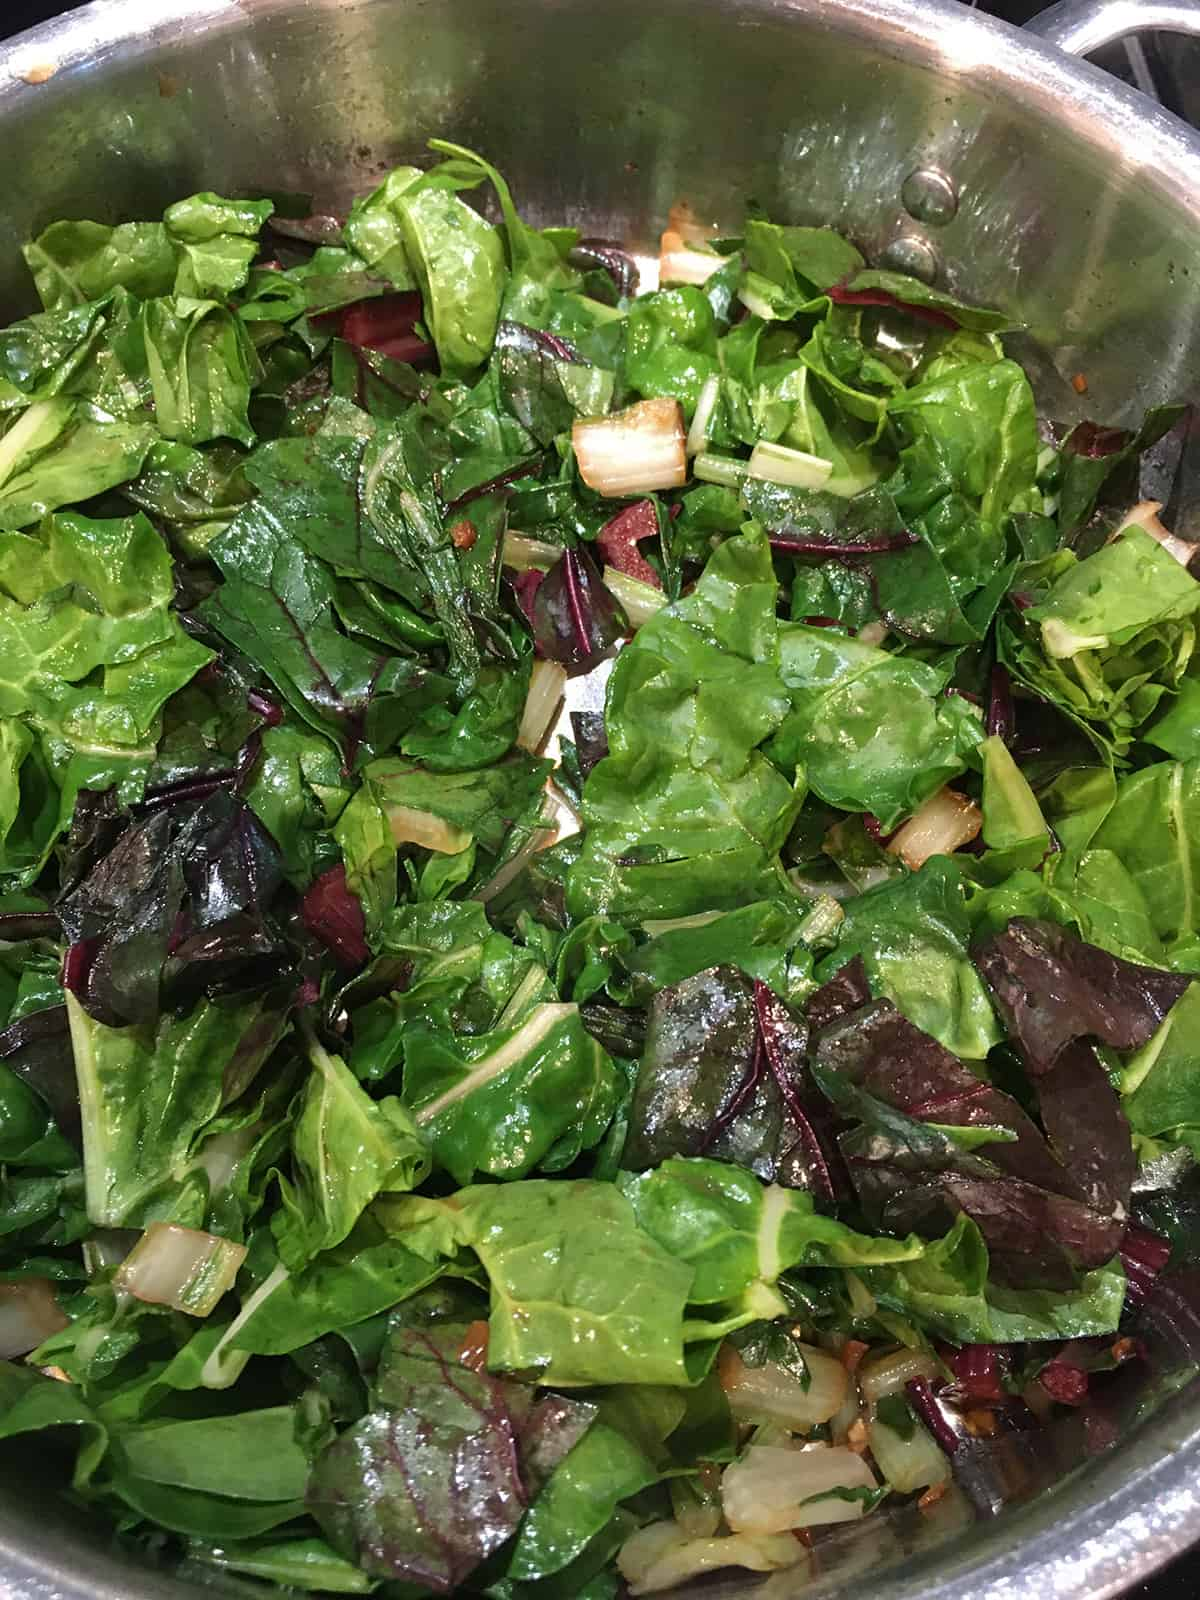 Swiss chard sautéing in a stainless steel skillet